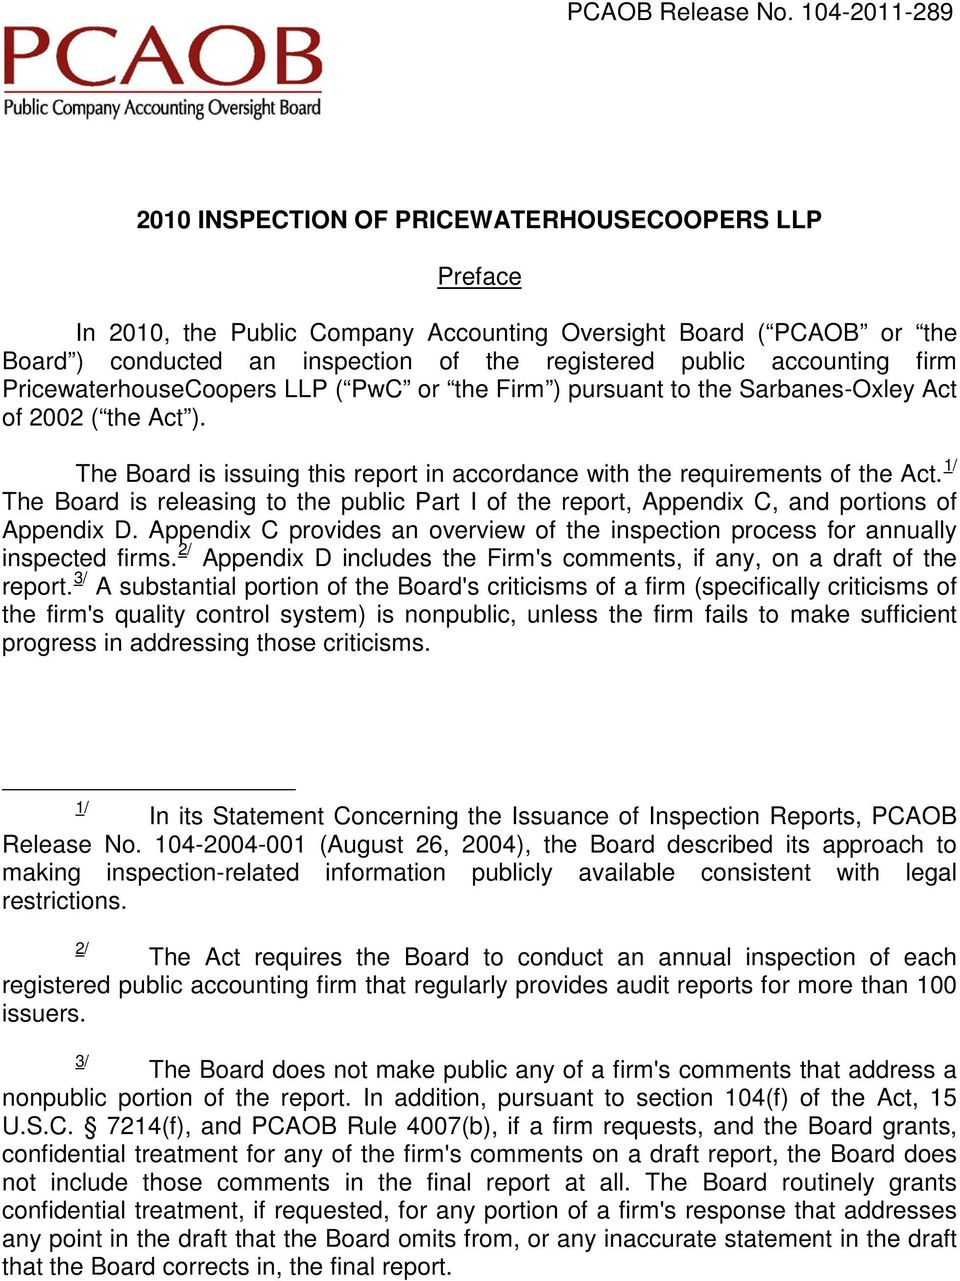 1/ The Board is releasing to the public Part I of the report, Appendix C, and portions of Appendix D. Appendix C provides an overview of the inspection process for annually inspected firms.